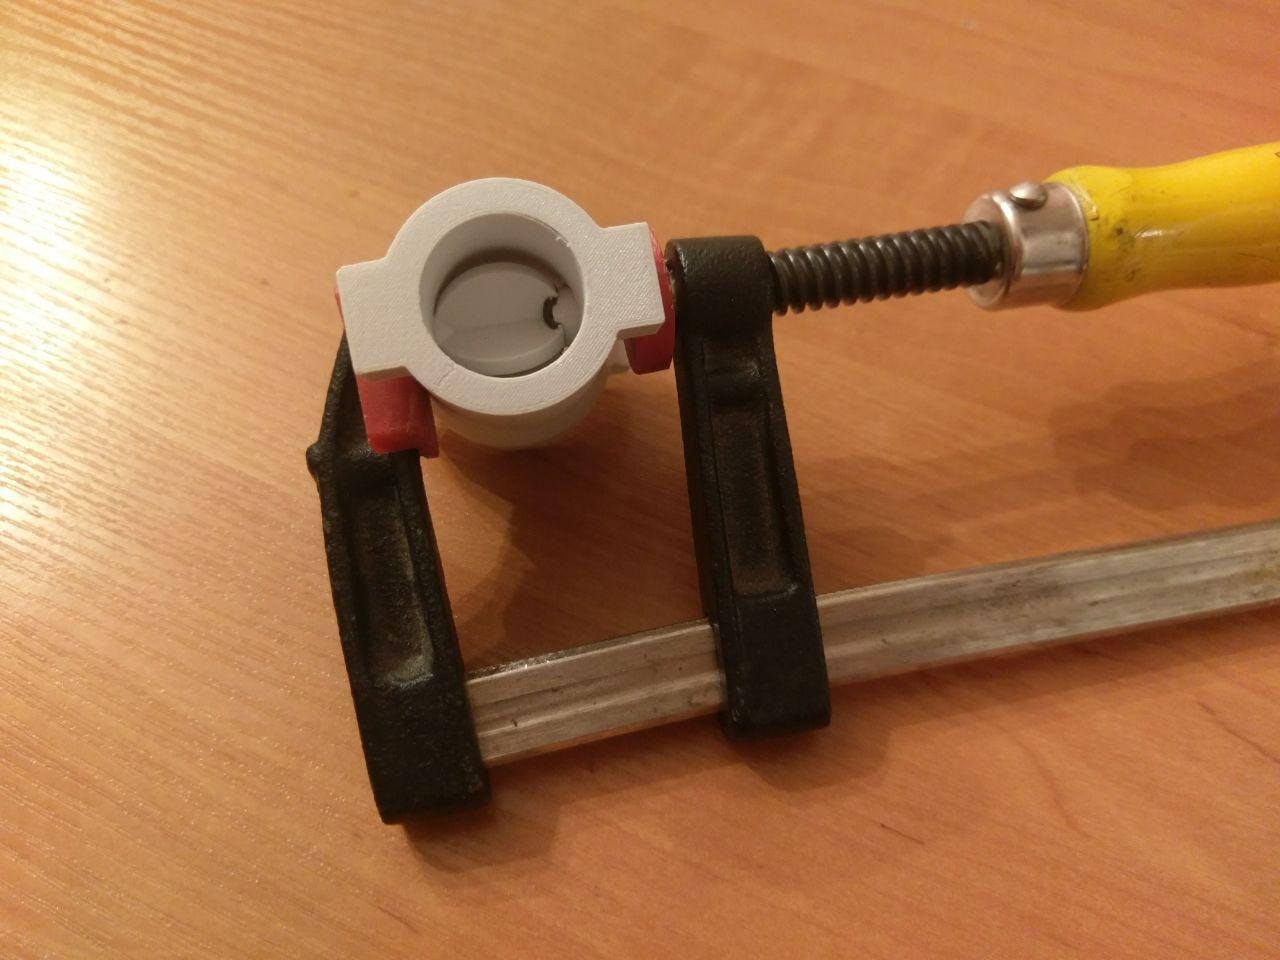 Gluing shaft and rotor